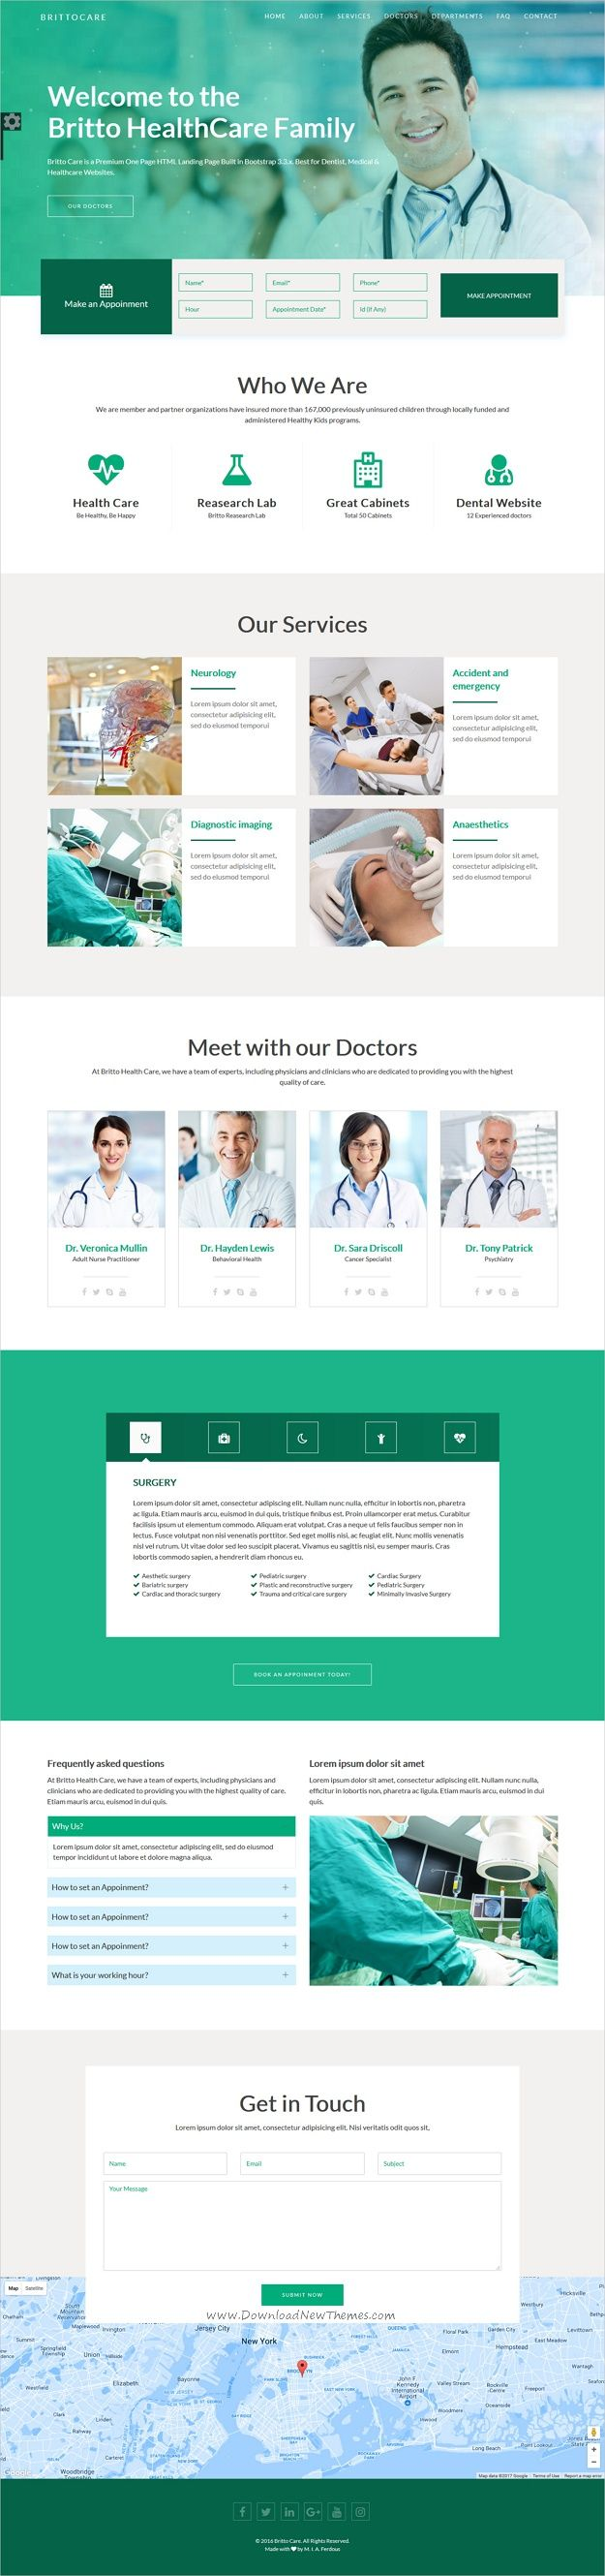 Brittocare responsive medical and healthcare template pinterest brittocare is a wonderful 2in1 responsive html5 bootstrap template for medical health center dentists or pharmacies websites download now maxwellsz